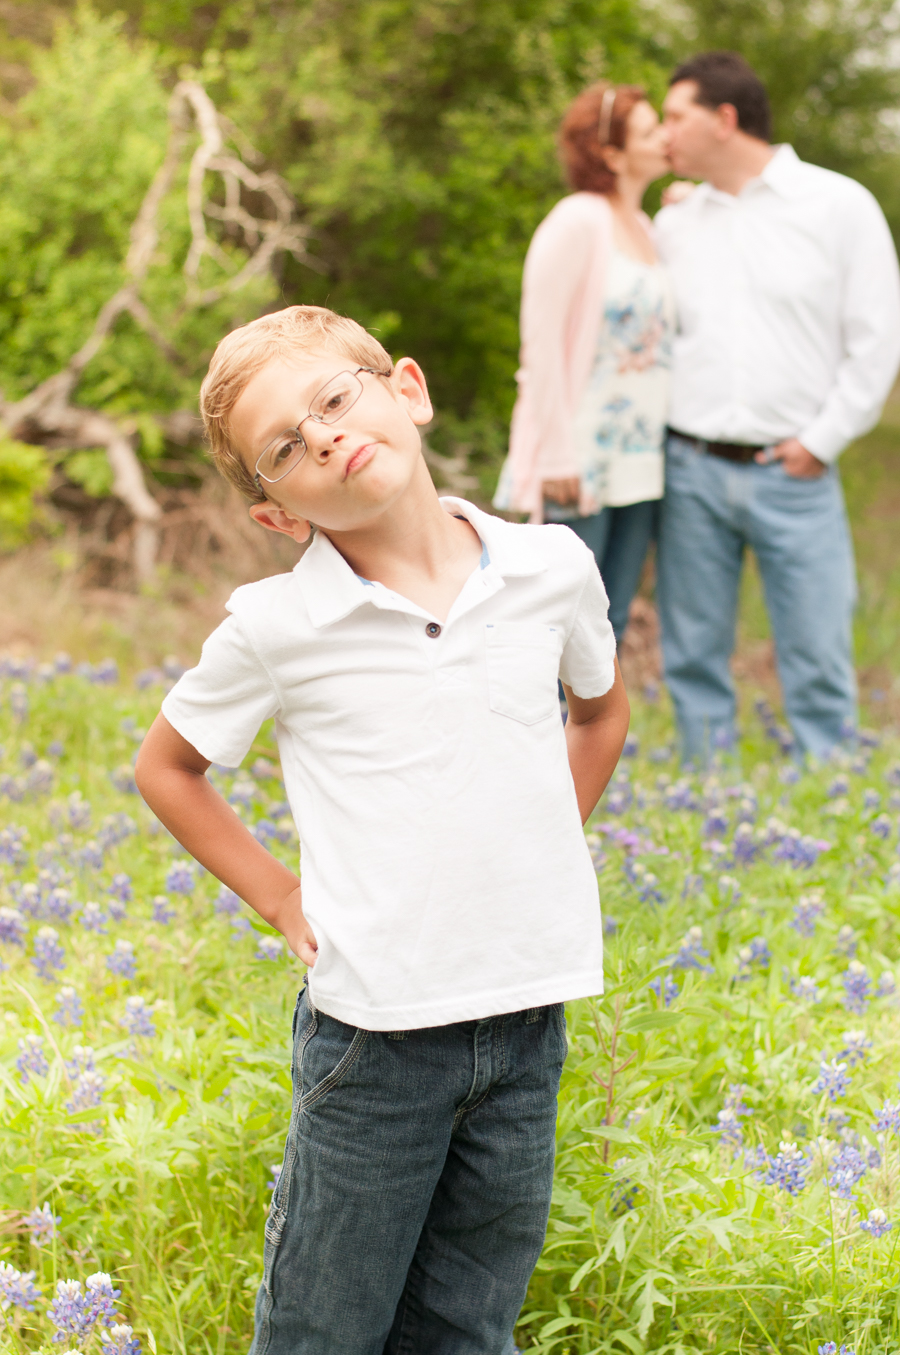 Texas Family Portrait Session in Bluebonnets